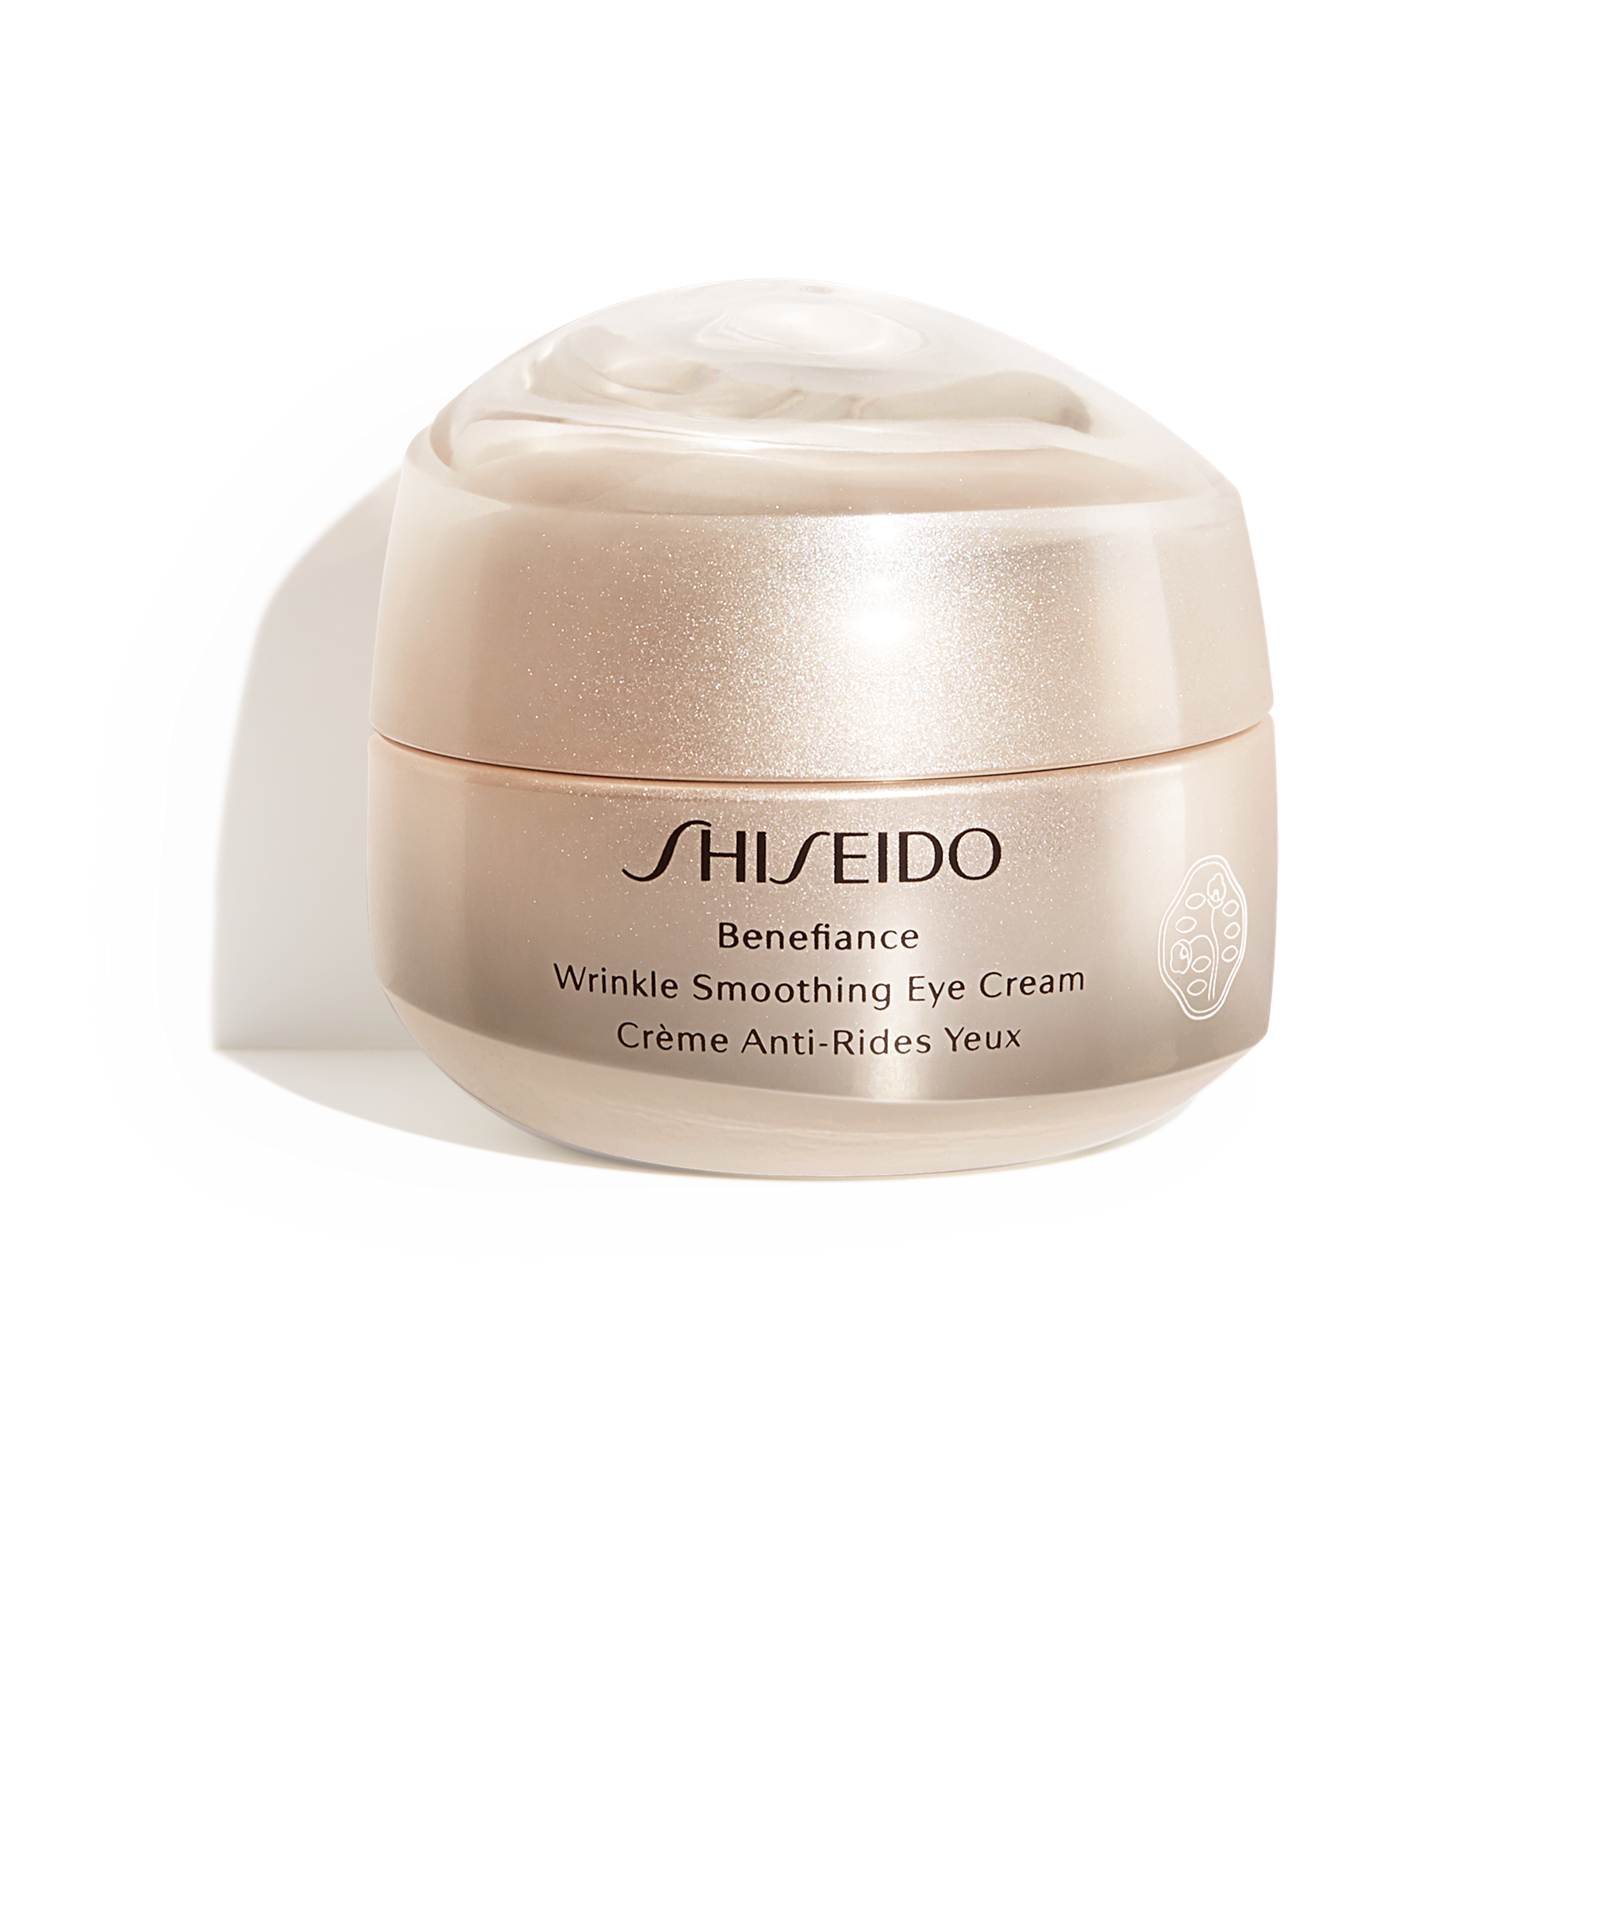 Bene ance Wrinkle Smoothing Eye Cream de SHISEIDO